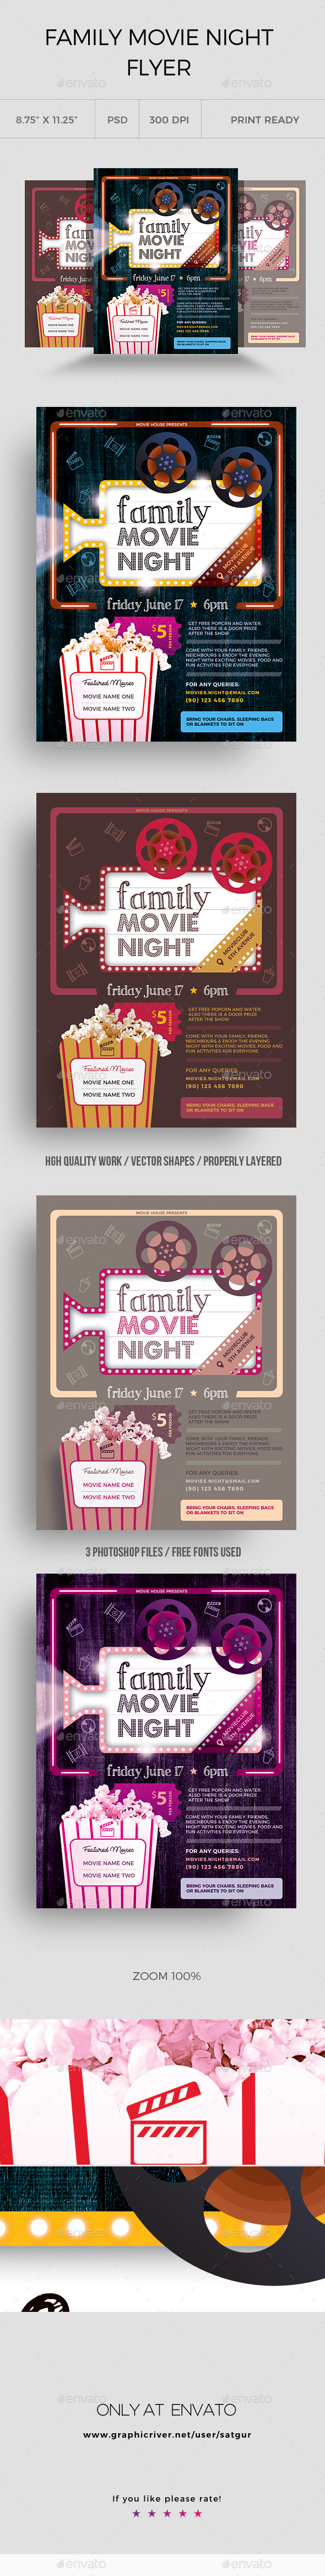 Family Movie Night Flyer - Clubs & Parties Events